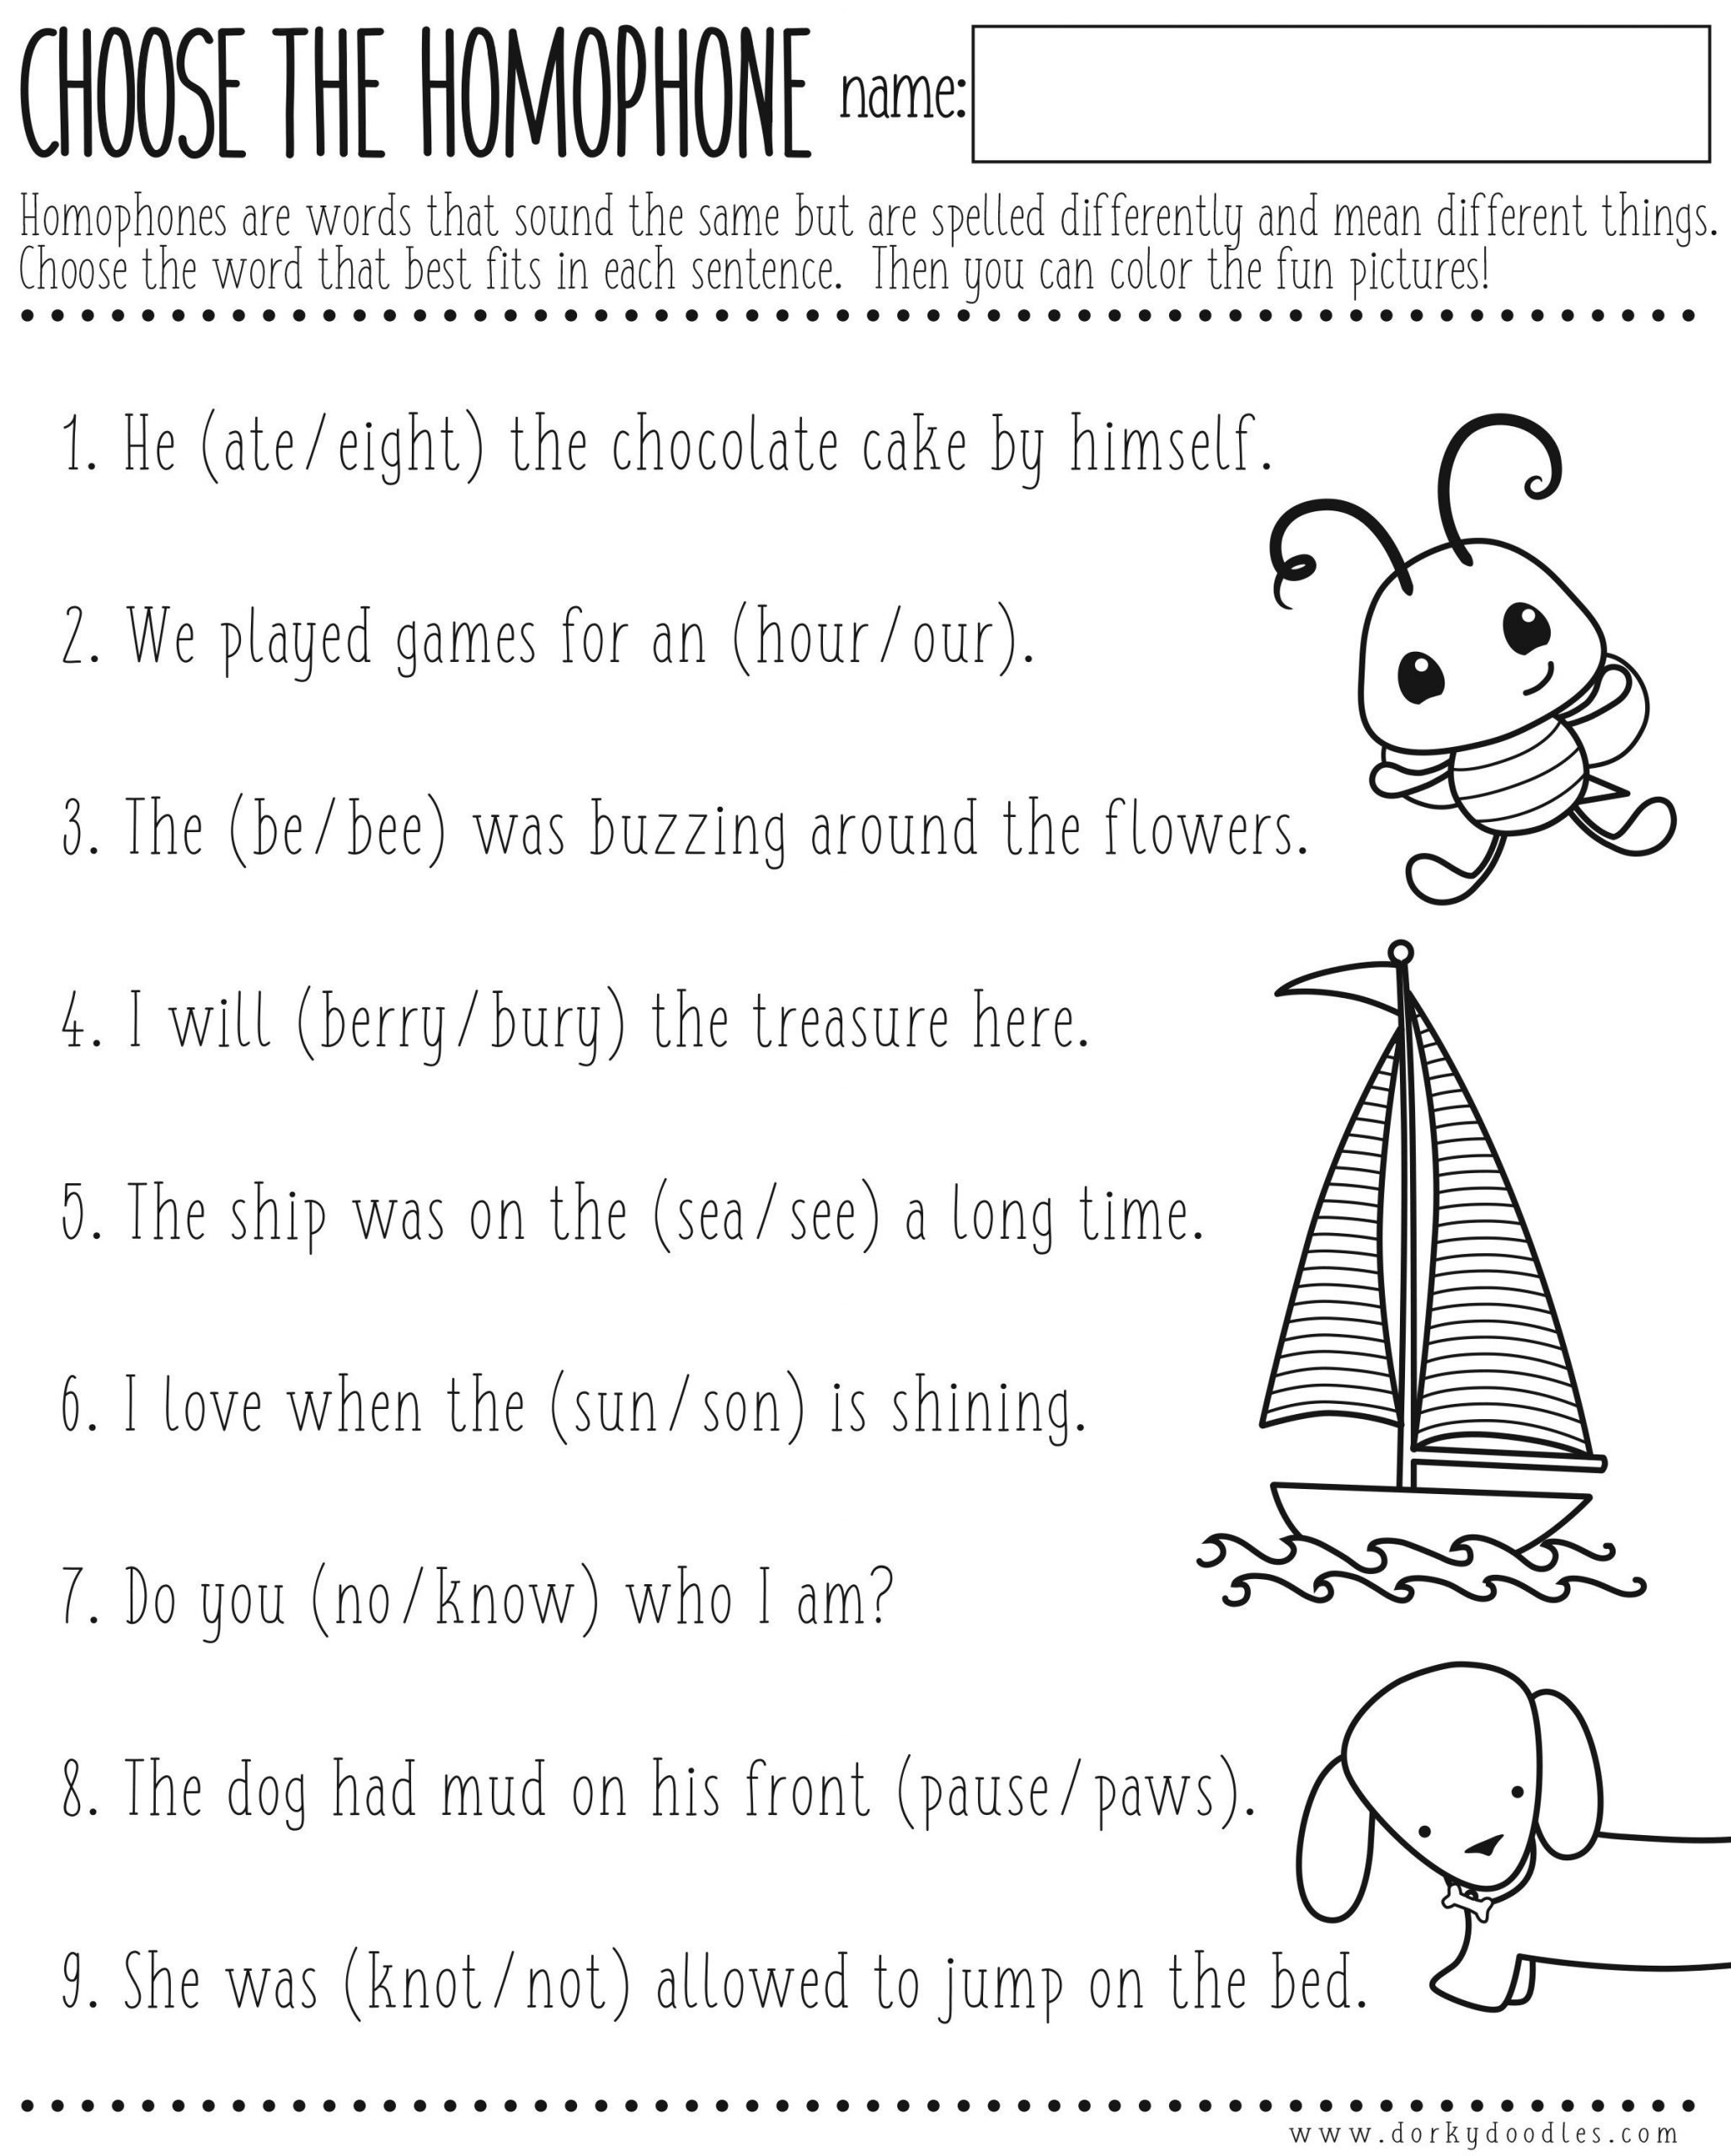 Free Homophone Worksheets Homophones Worksheet Printable – Dorky Doodles